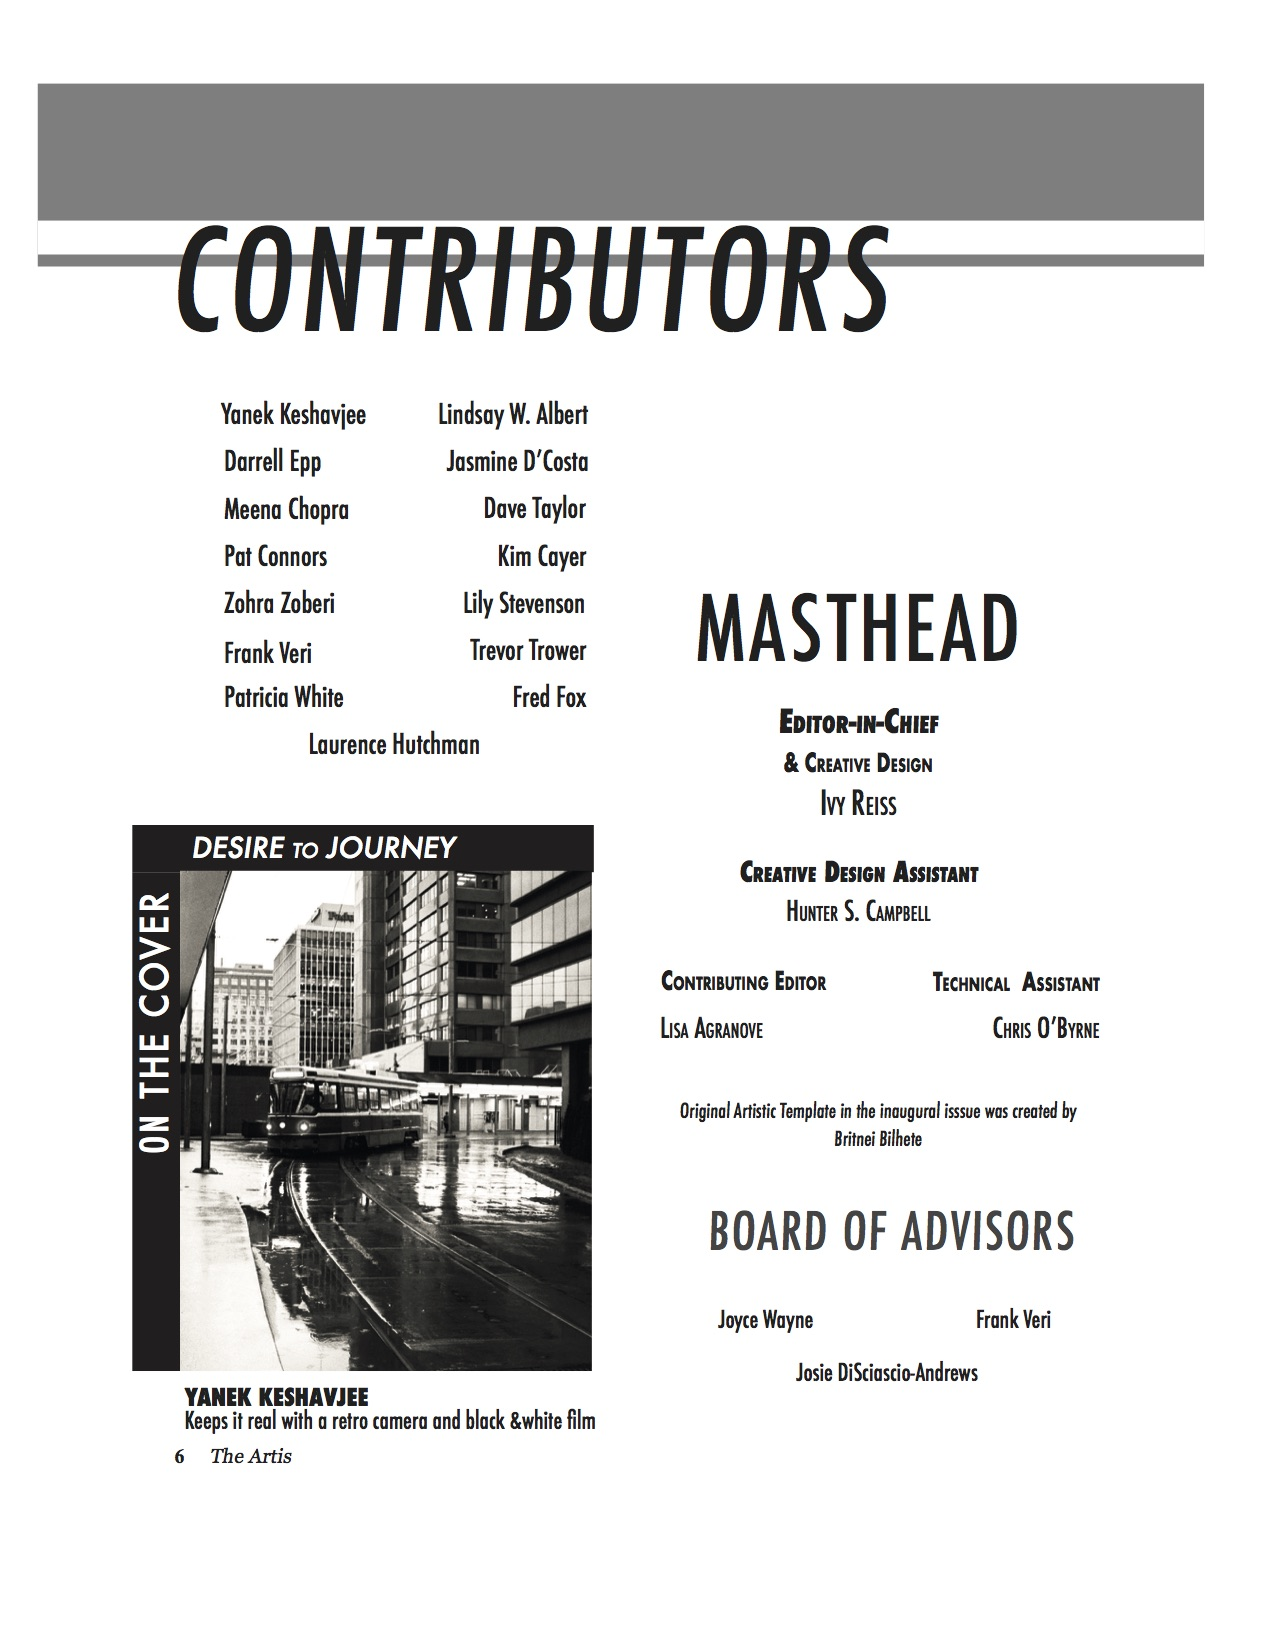 Contents 2 page.jpg